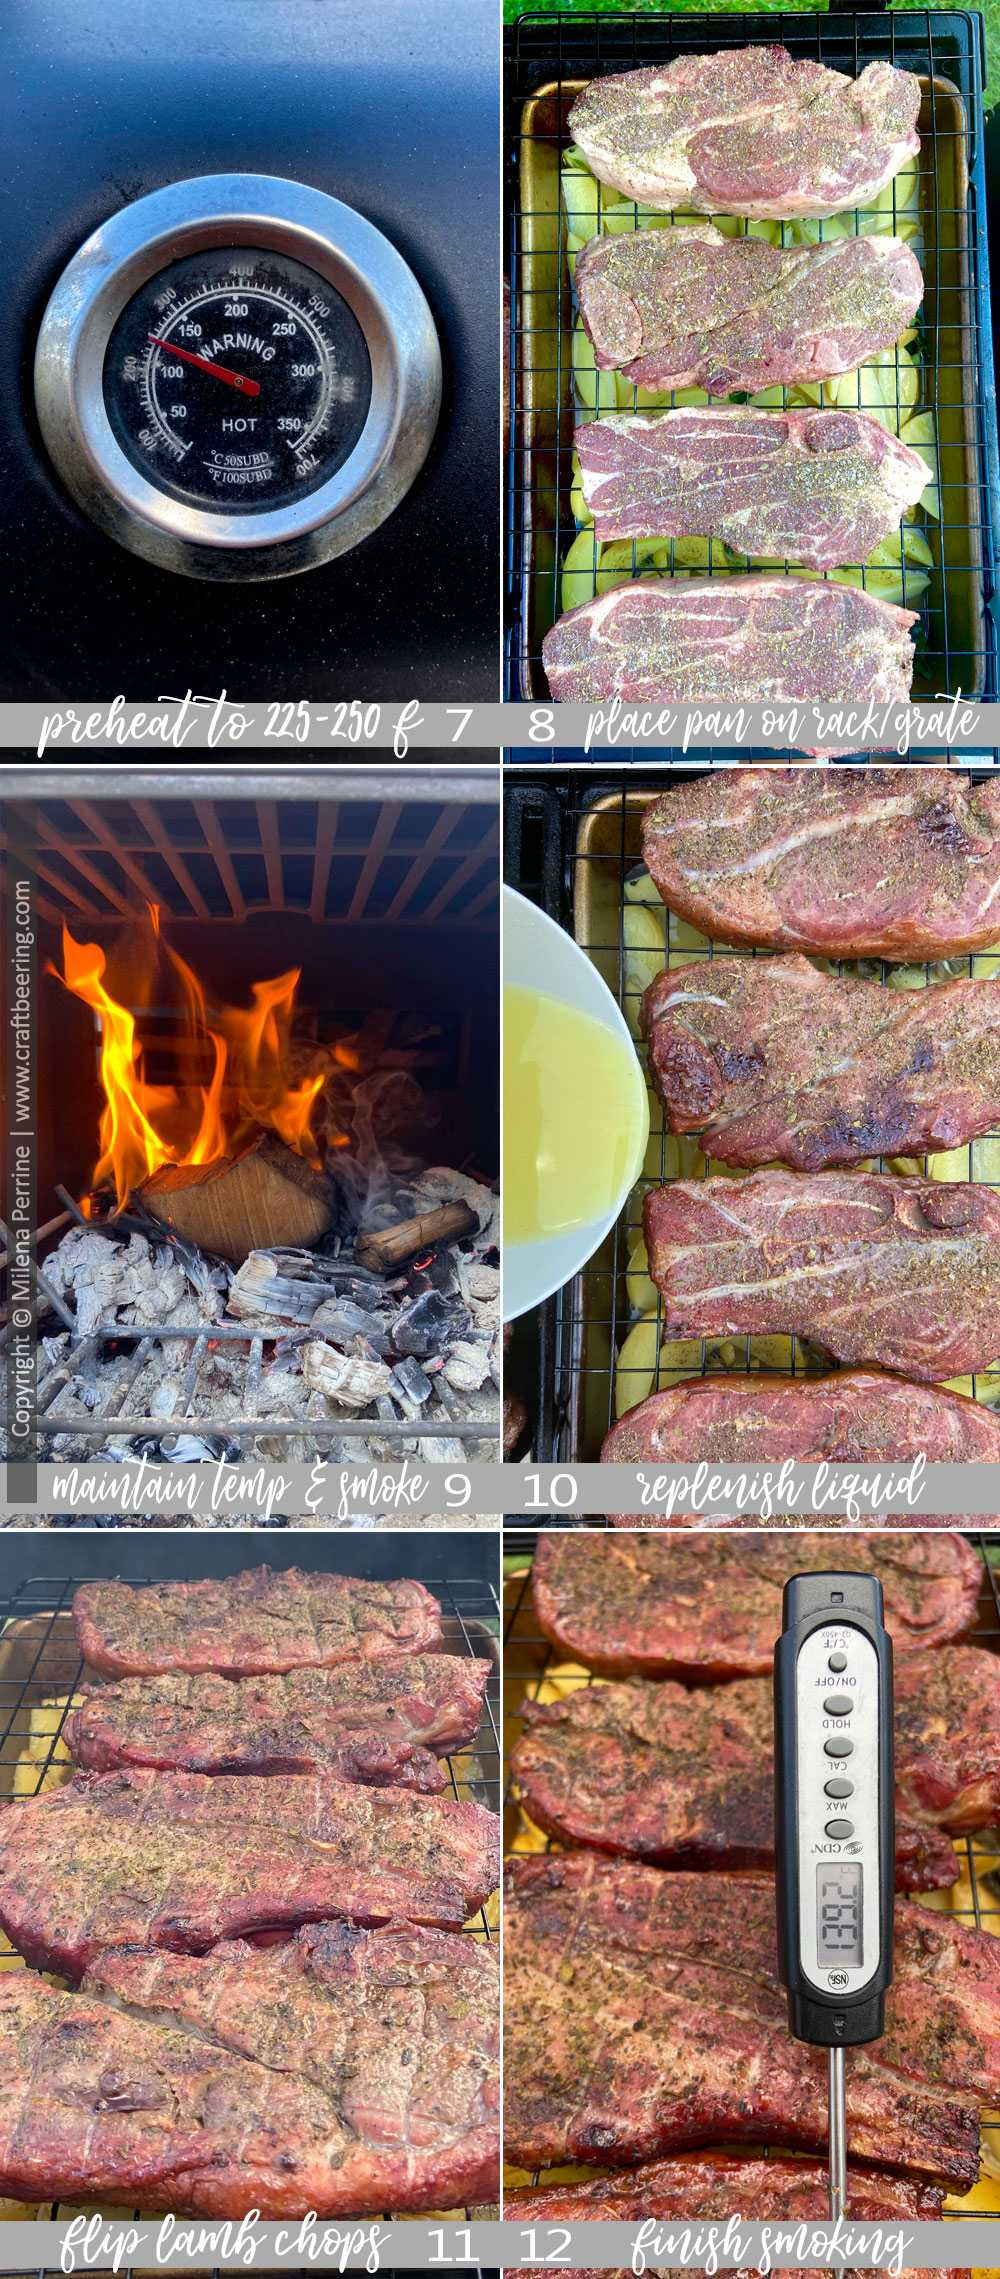 Step by step how to smoke lamb loin chops or lamb shoulder chops. Part 2.